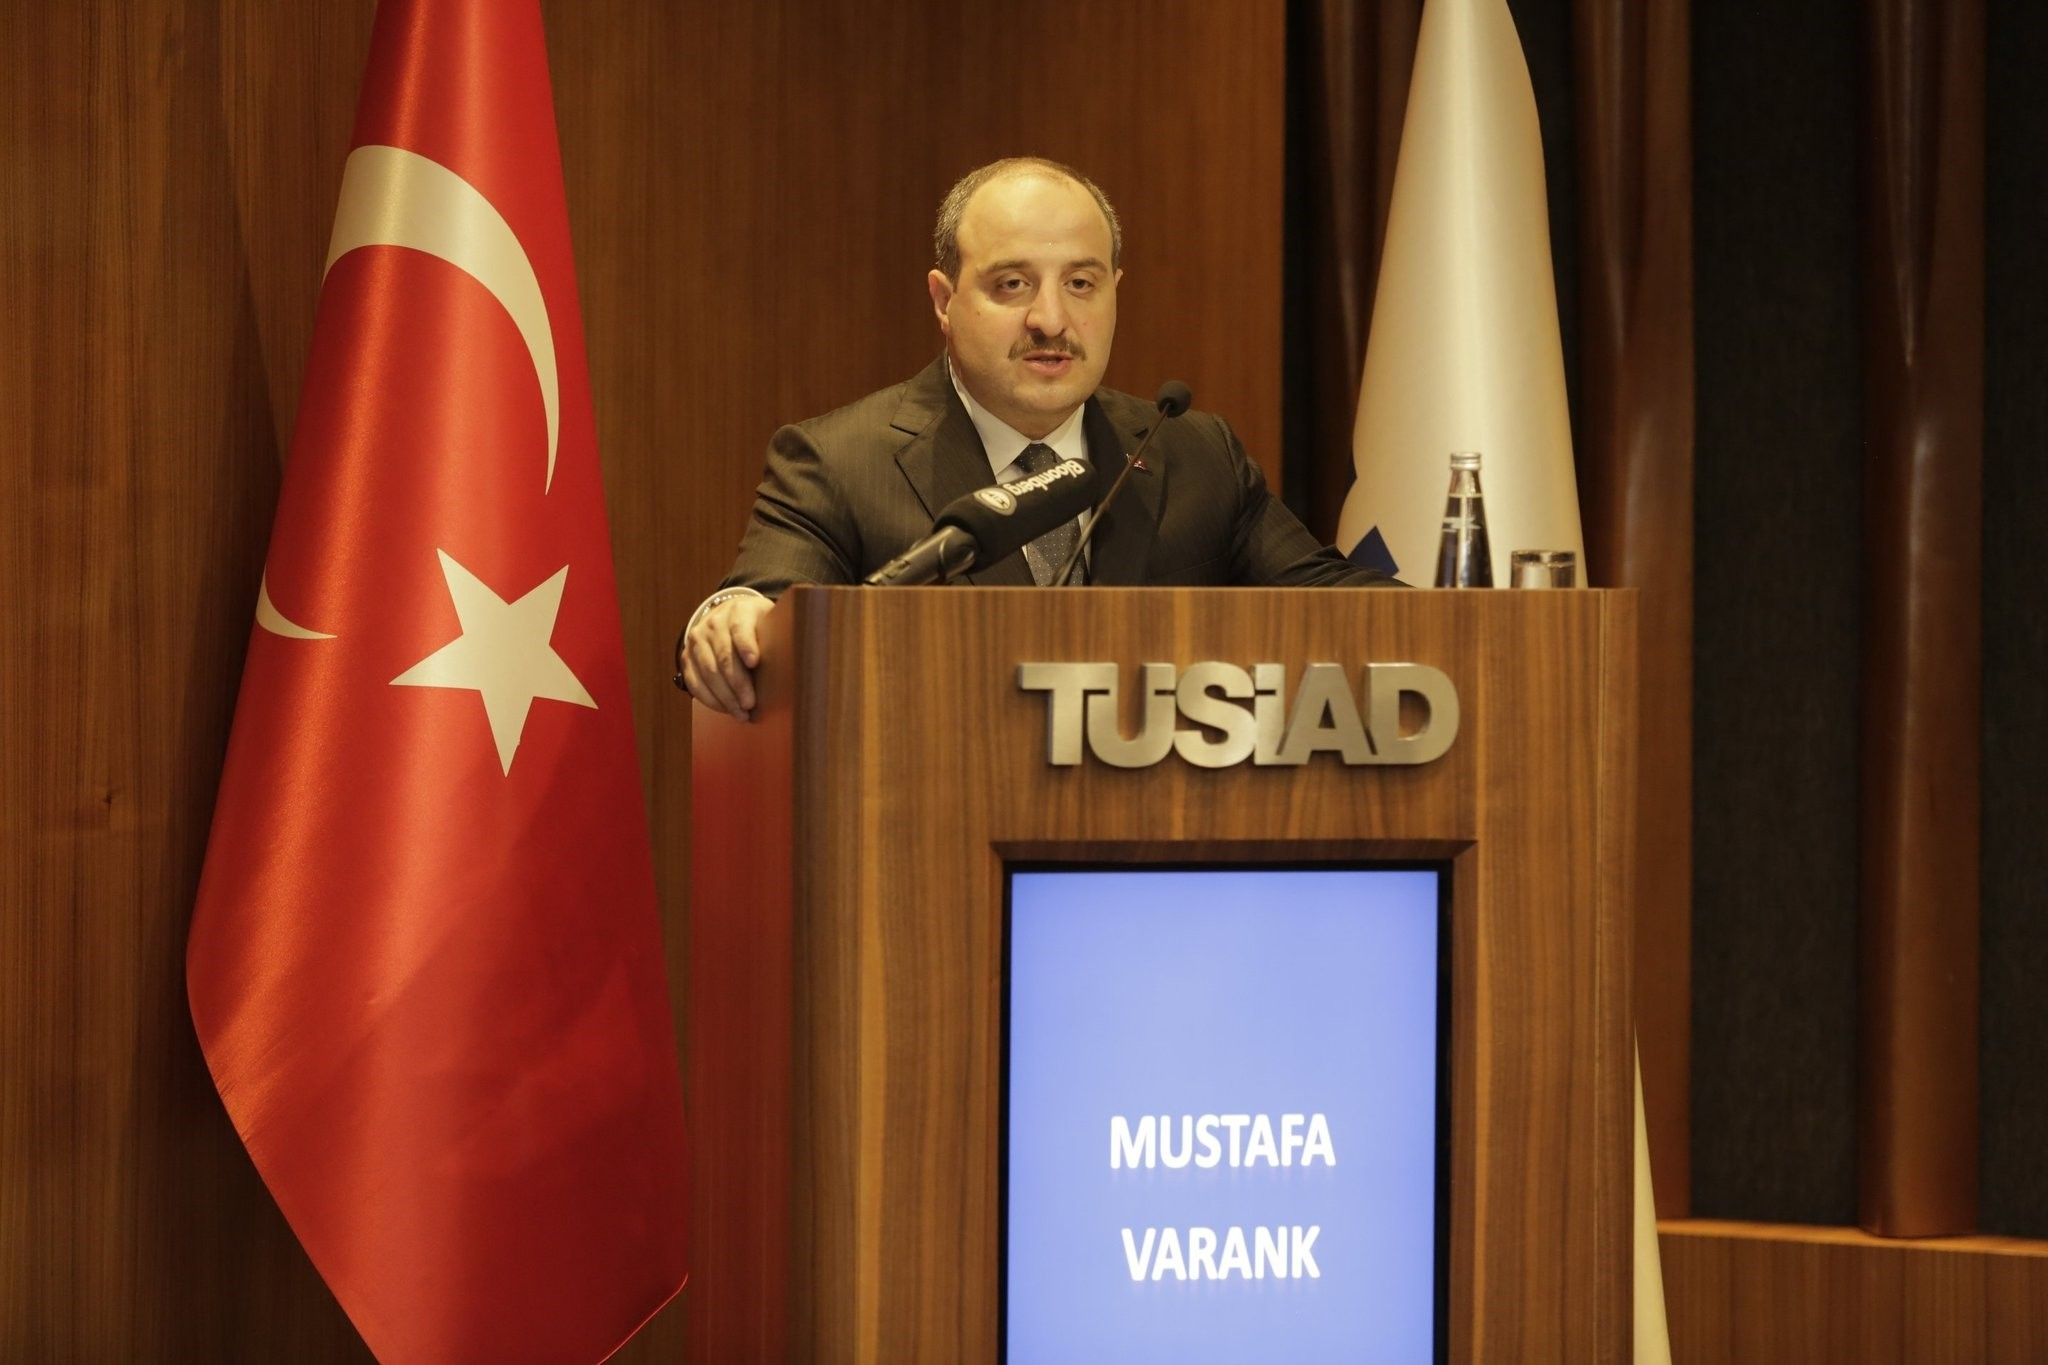 Industry and Technology Minister Mustafa Varank delivers a speech at the fourth u201cDigital Transformation Days in Industryu201d at the headquarters of the Turkish Industrialists and Businessmen Association (Tu00dcSu0130AD), Istanbul, Sept. 18.